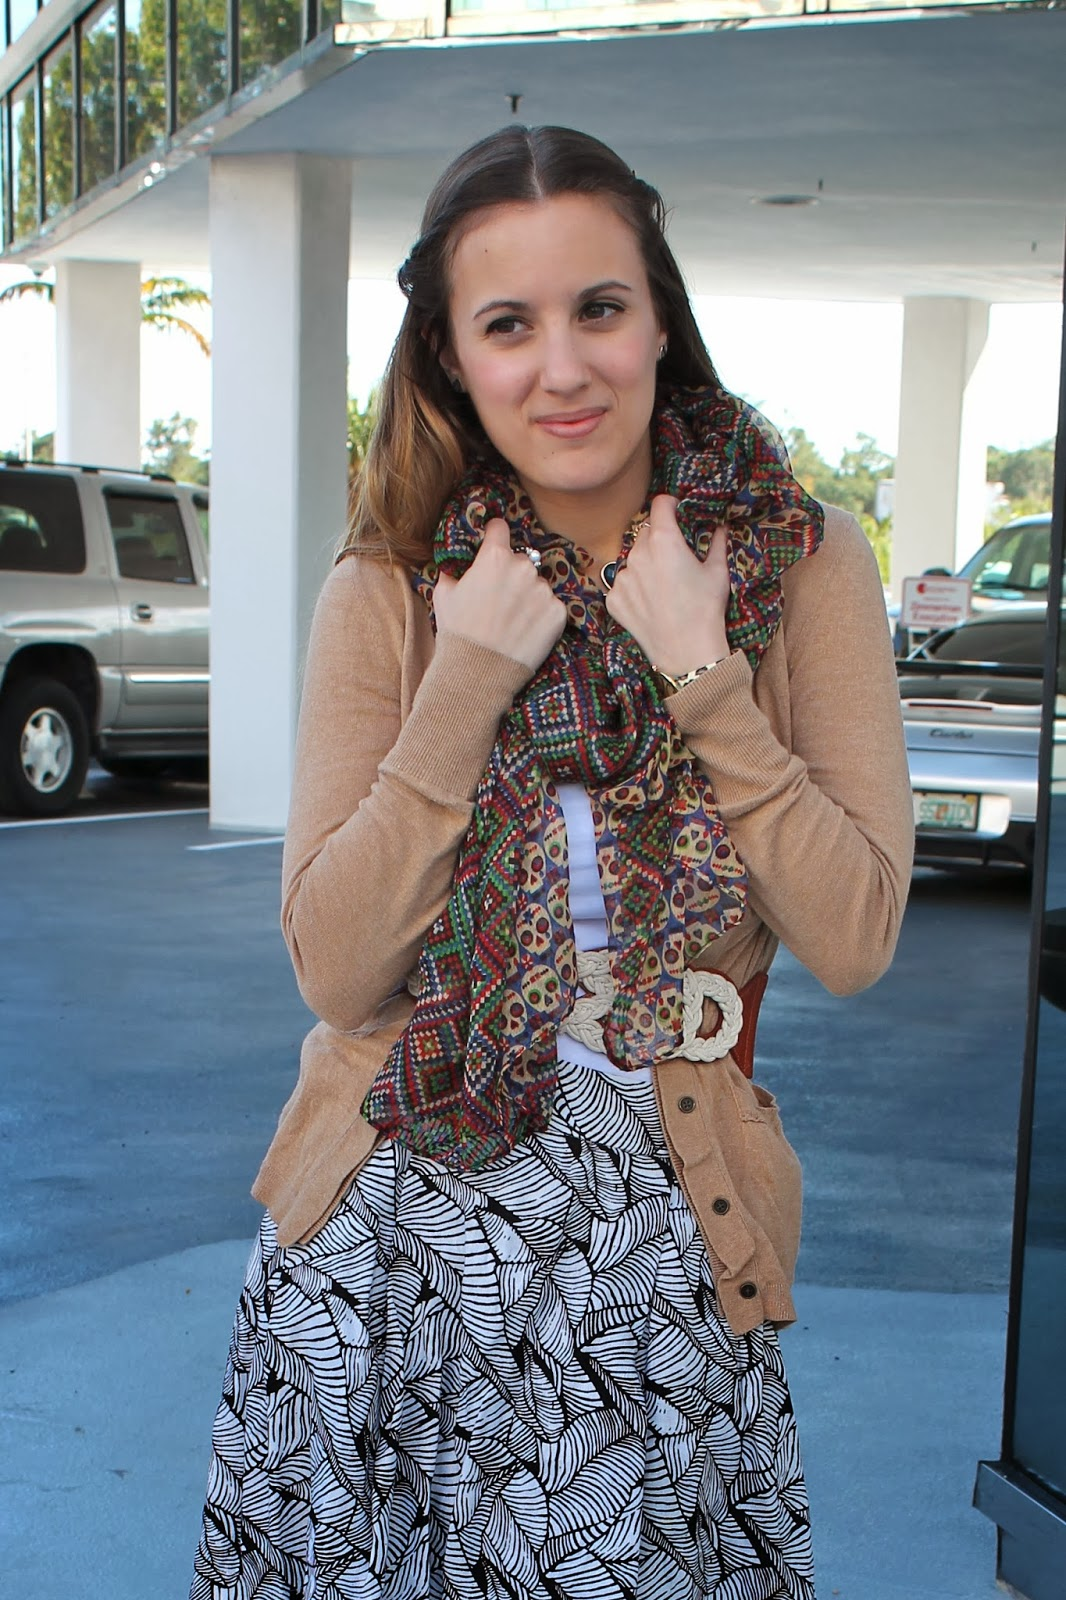 Anthropologie, LF Stores, Forever 21, LOFT, fashion blogger, ootd, edgy, pattern mixing, winter fashion, Miami,